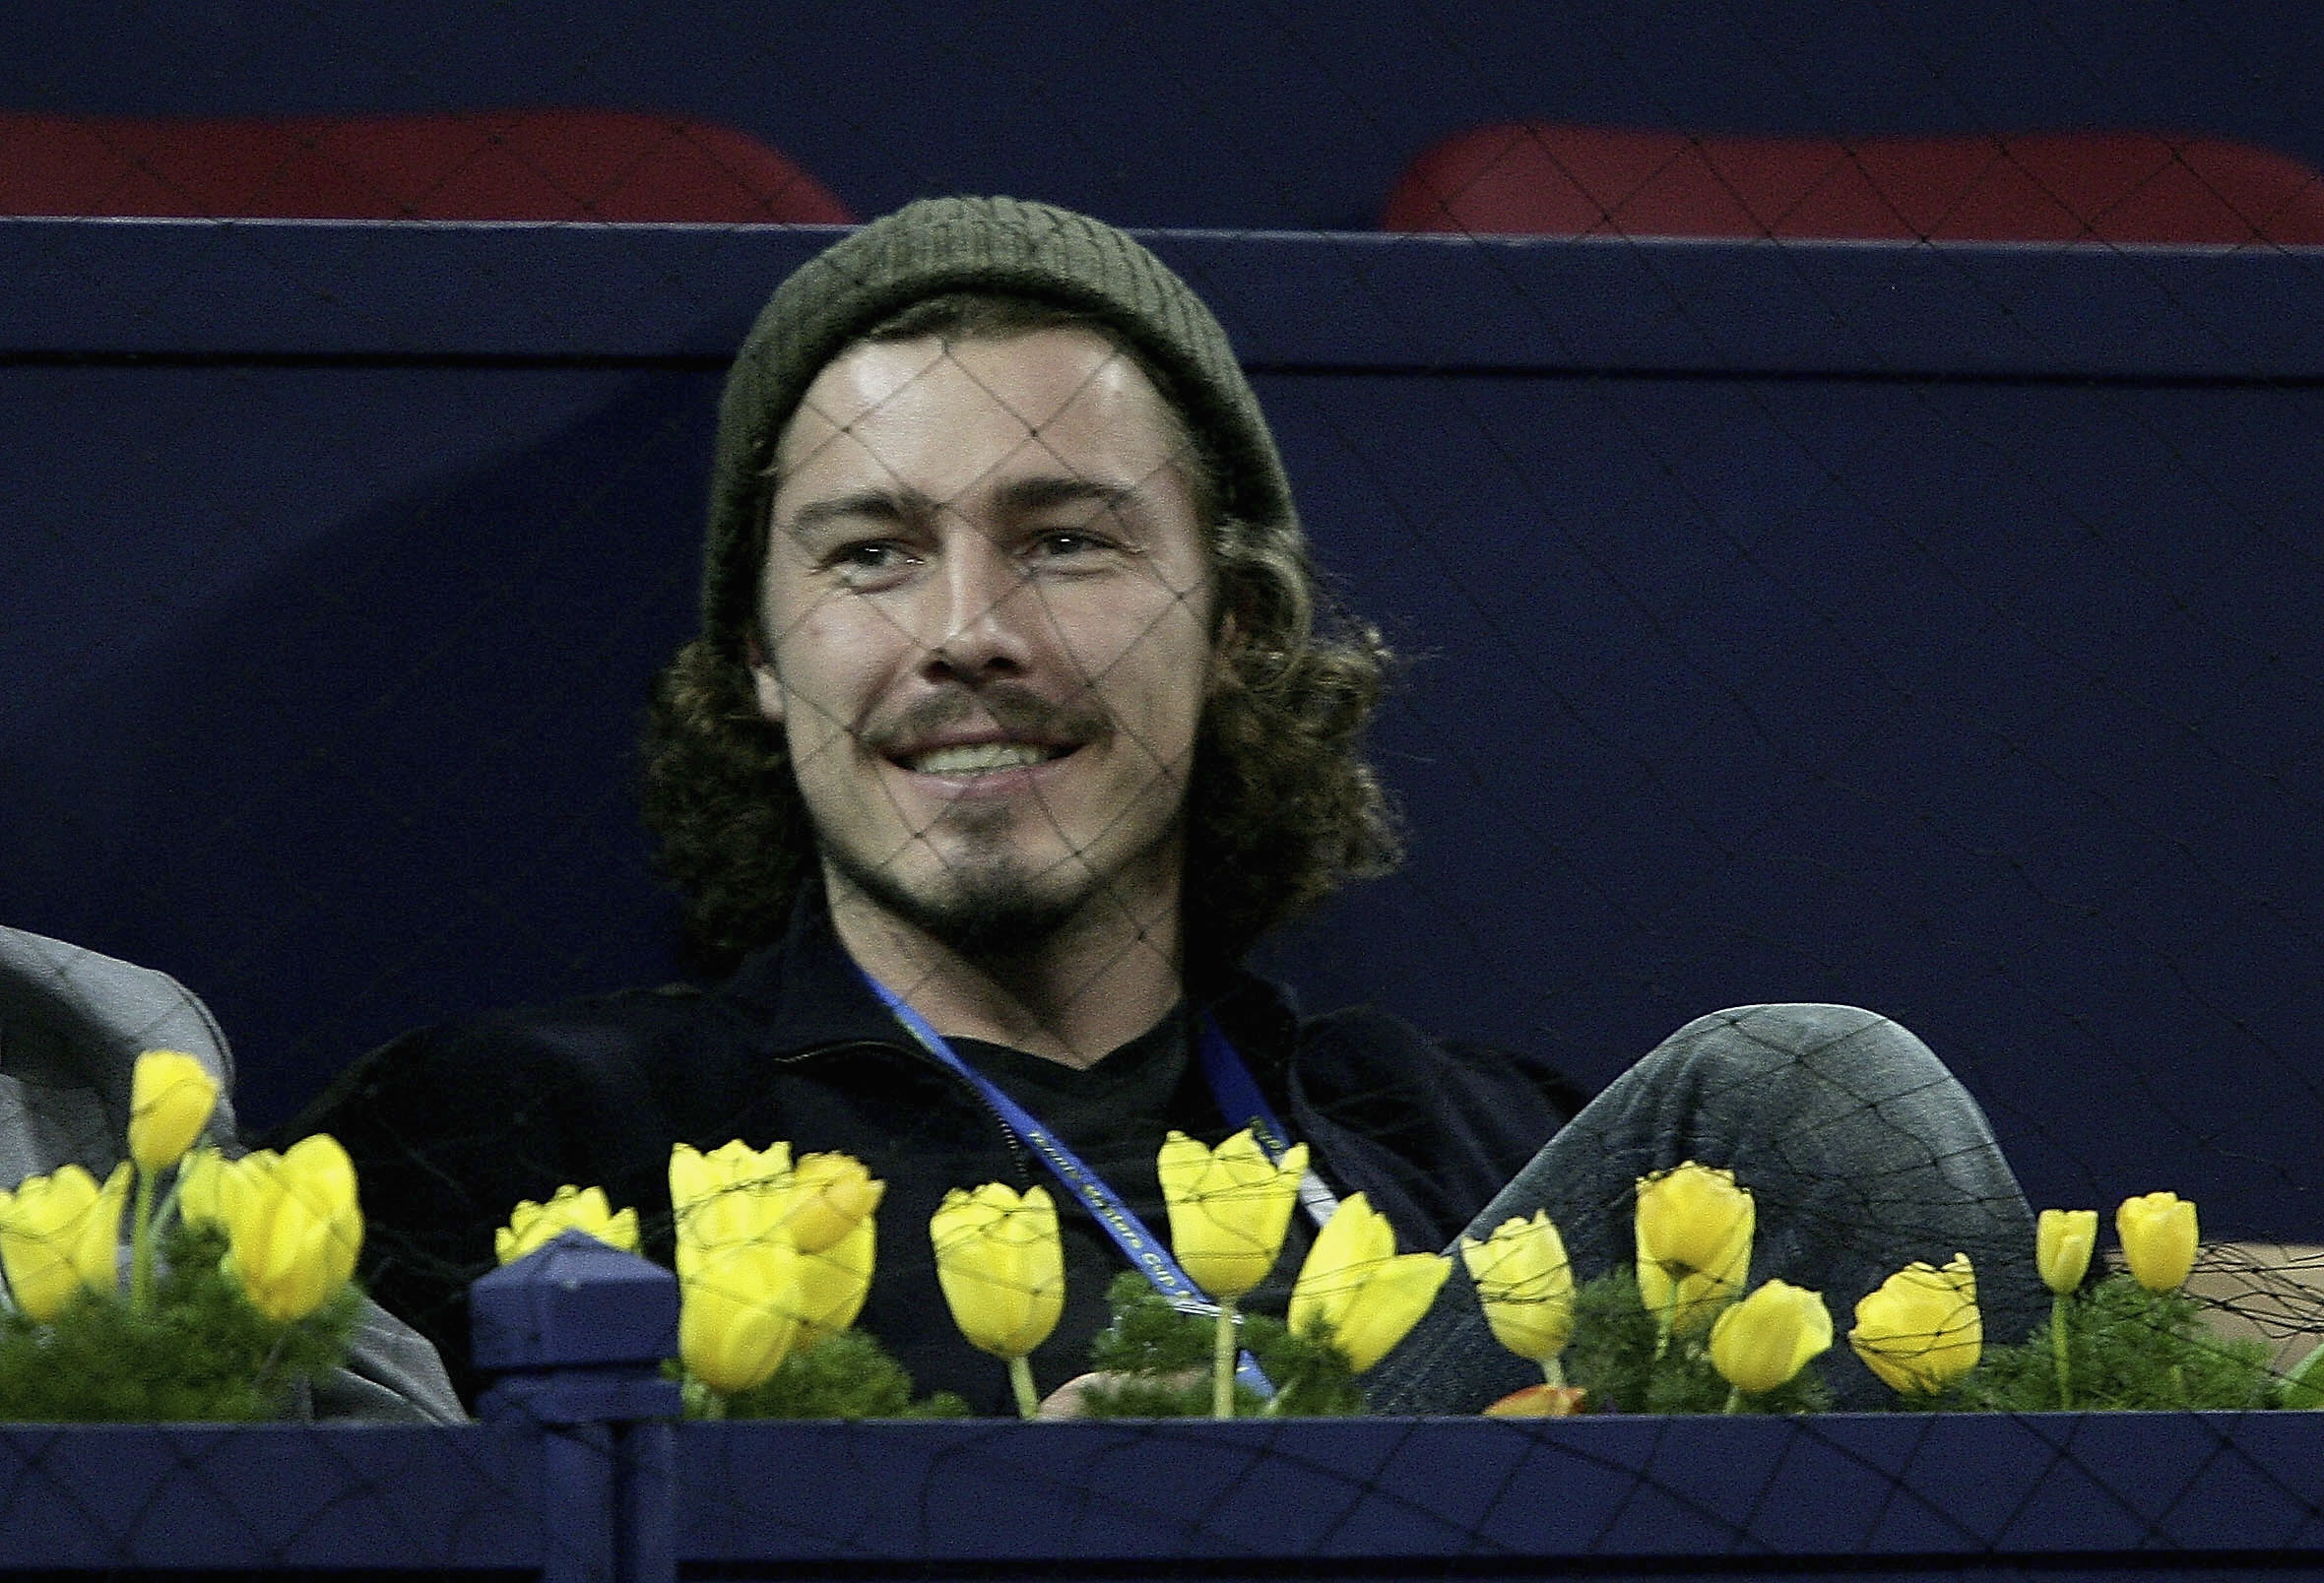 Marat Safin of Russia watches Andre Agassi during his match against Nikolay Davydenko.